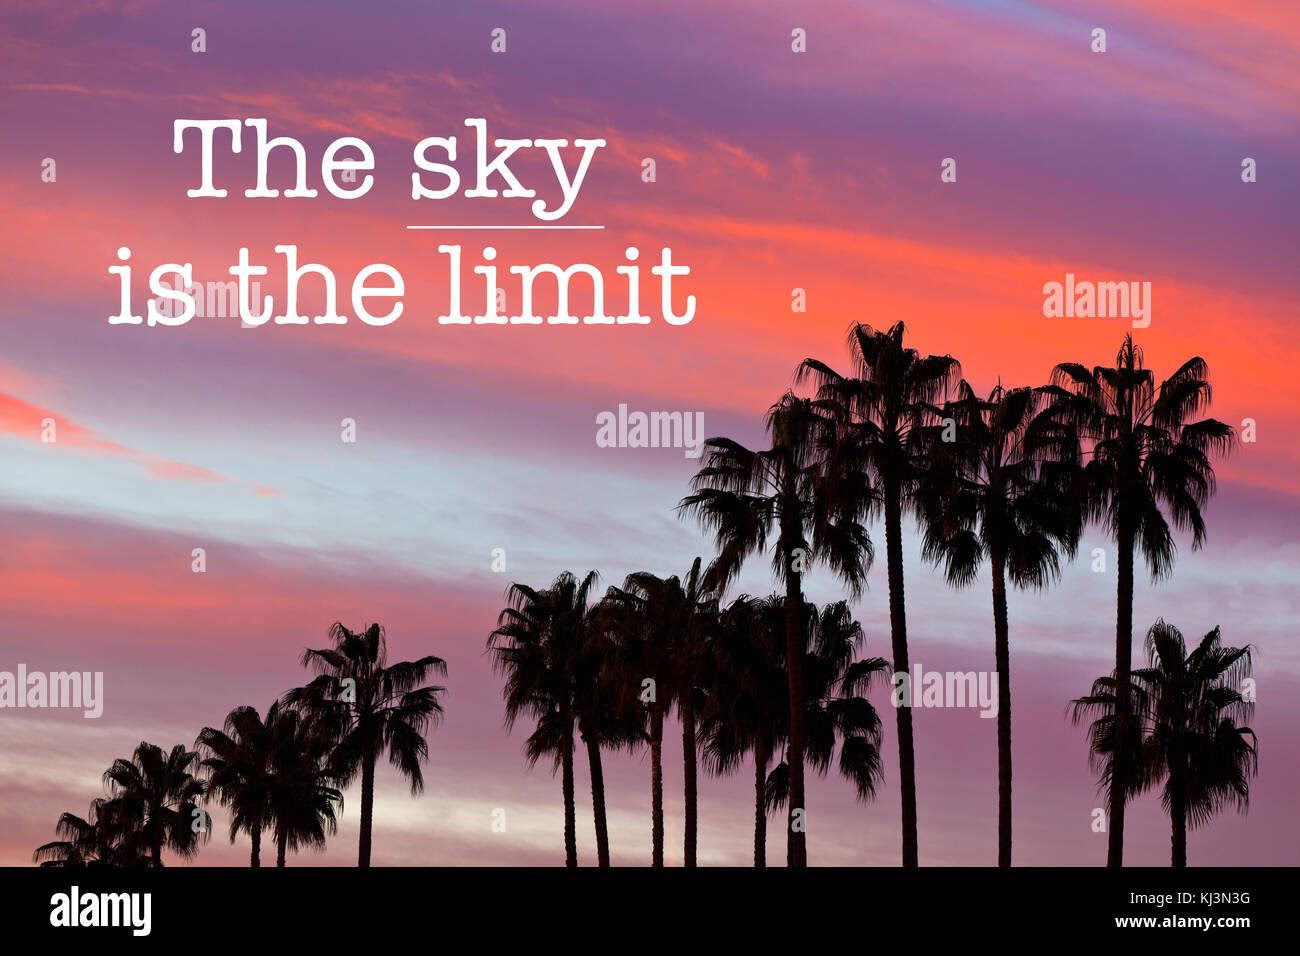 Inspirational Motivation Quote With Phrase The Sky Is The Limit